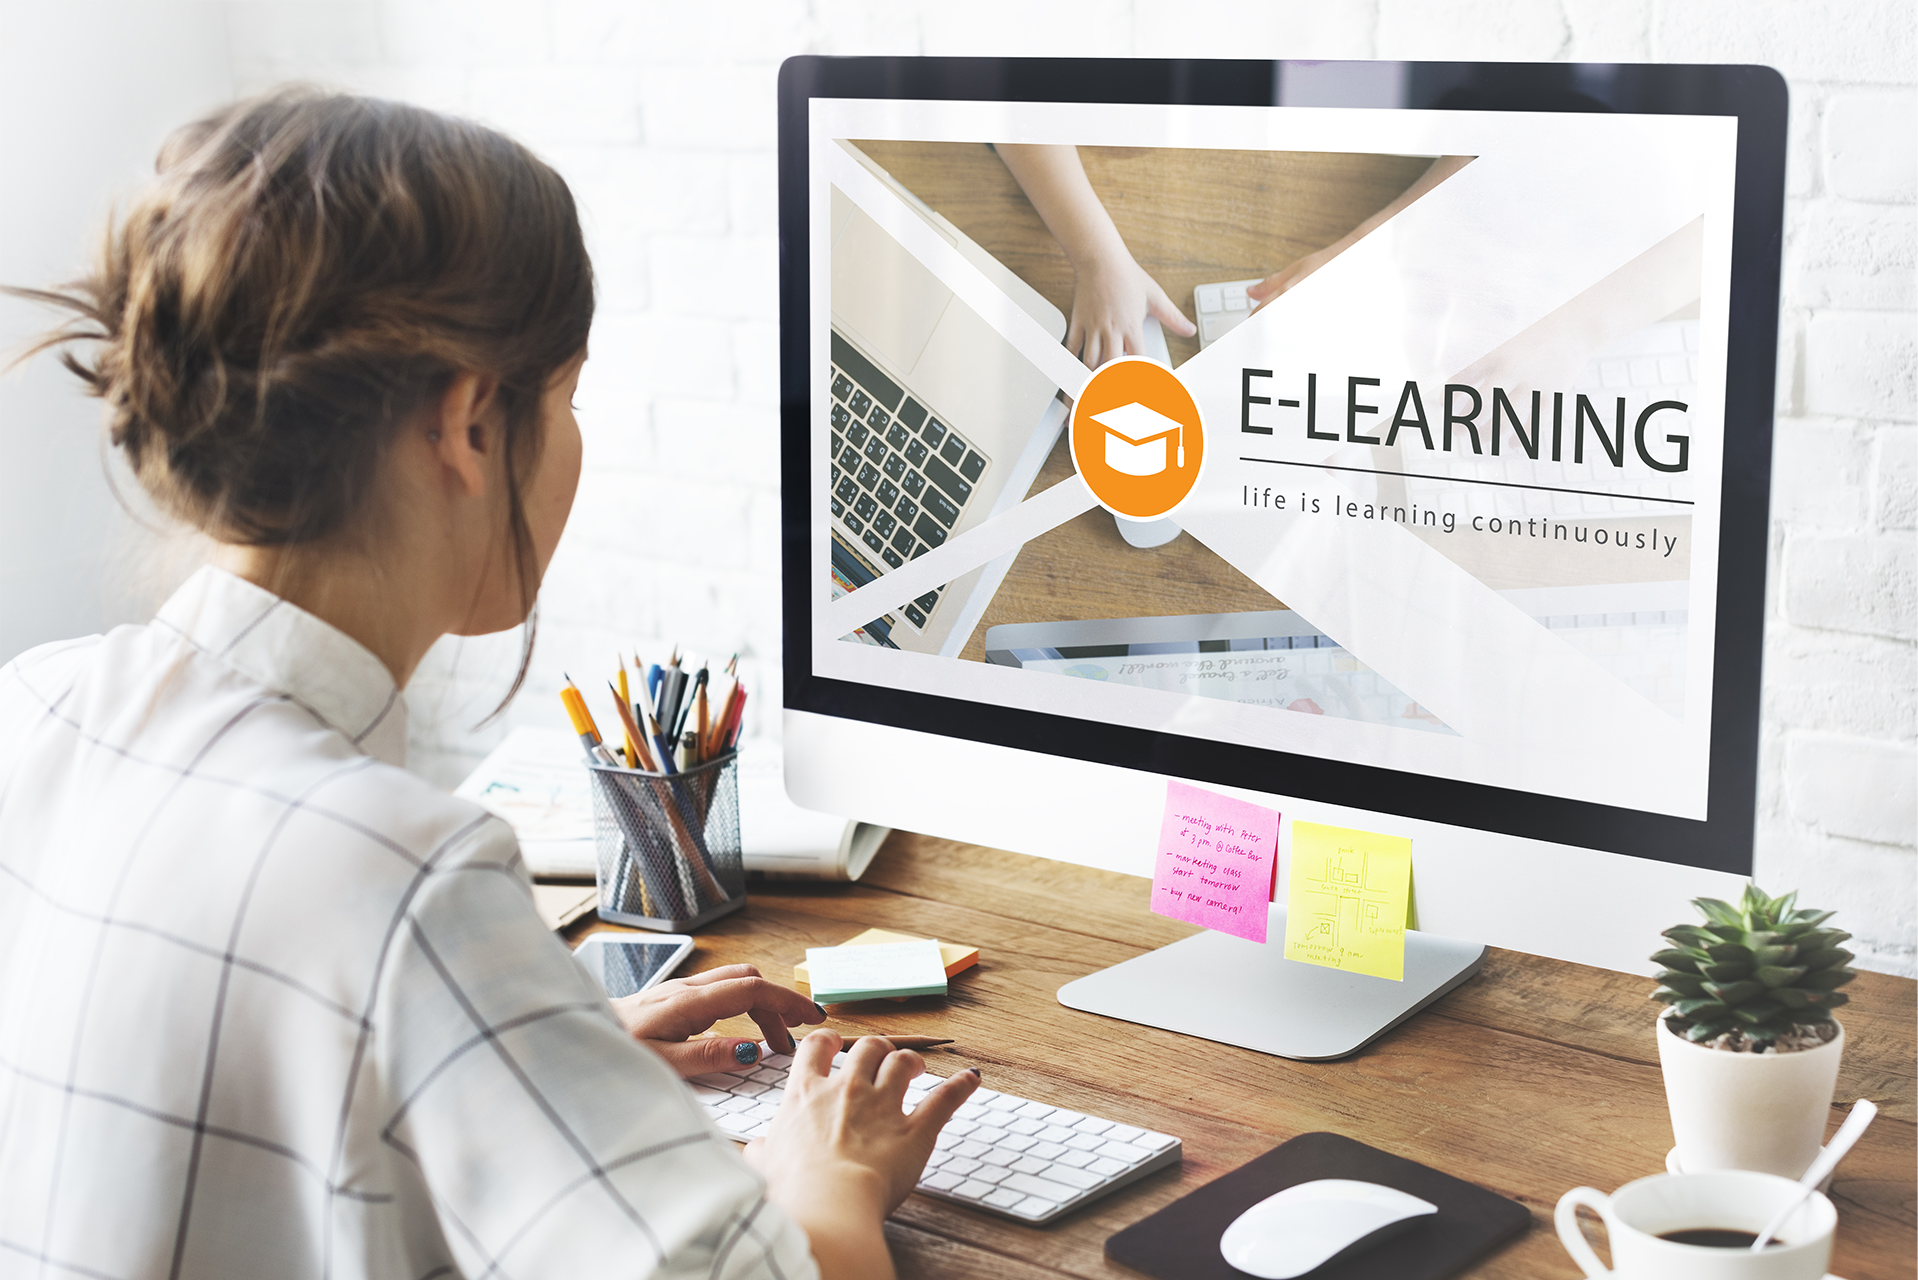 7 study tips for moving to online learning